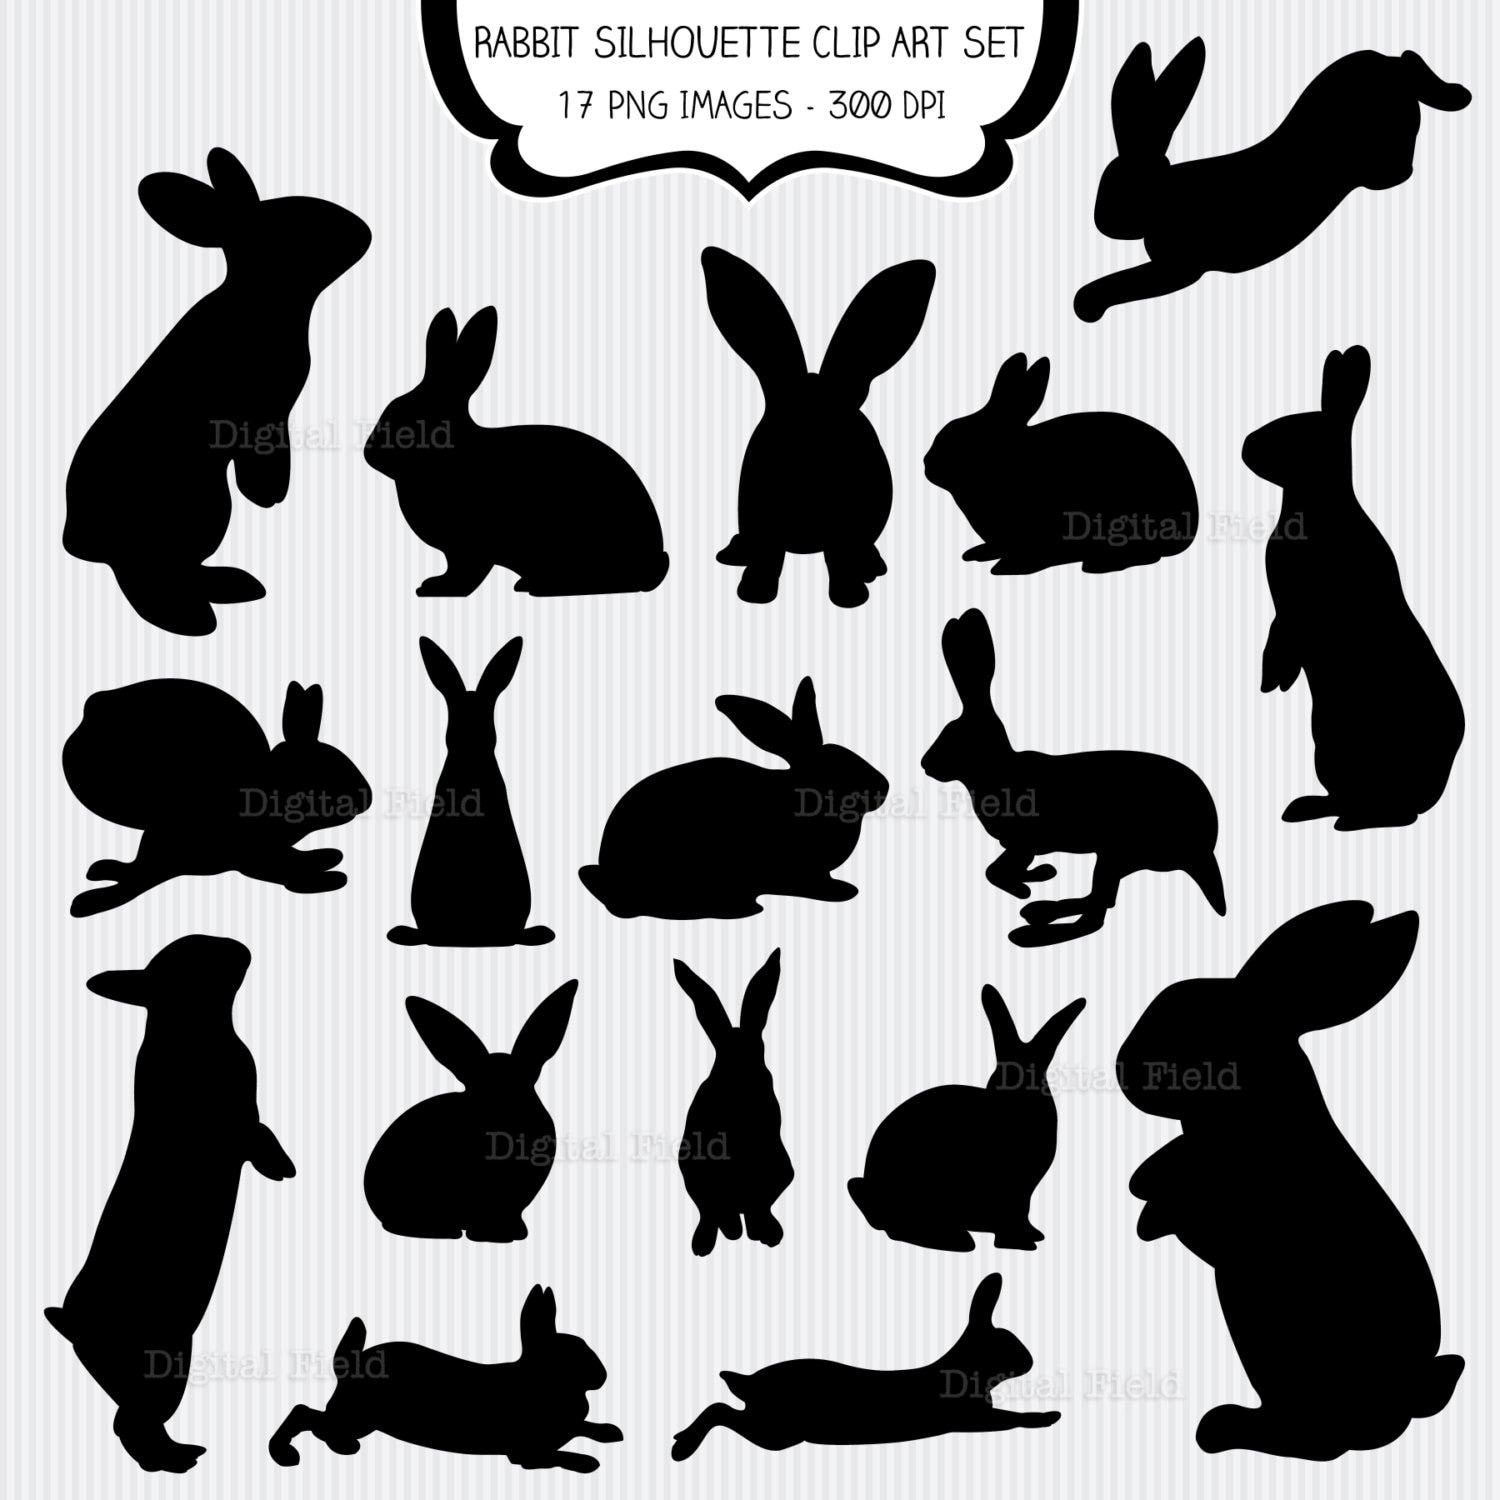 Monster image regarding bunny silhouette printable